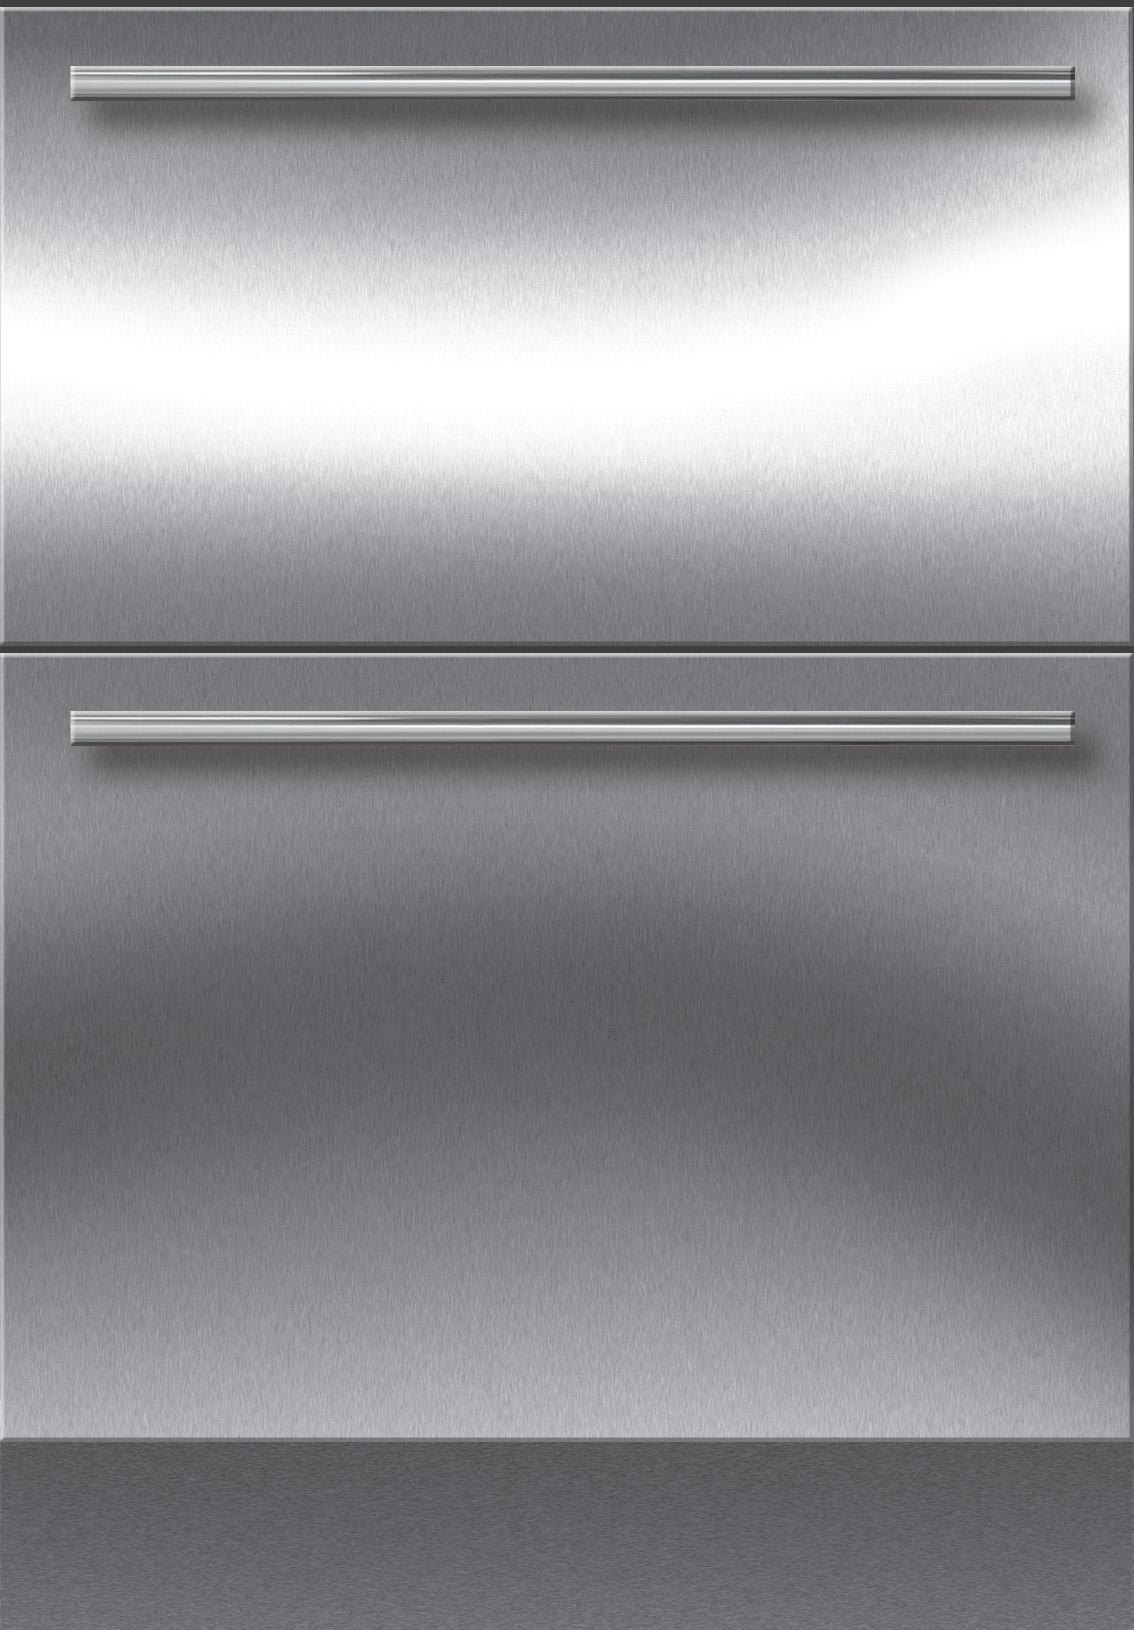 "Integrated Refrigeration 24"" Freezer Drawer by Sub-Zero at Furniture and ApplianceMart"